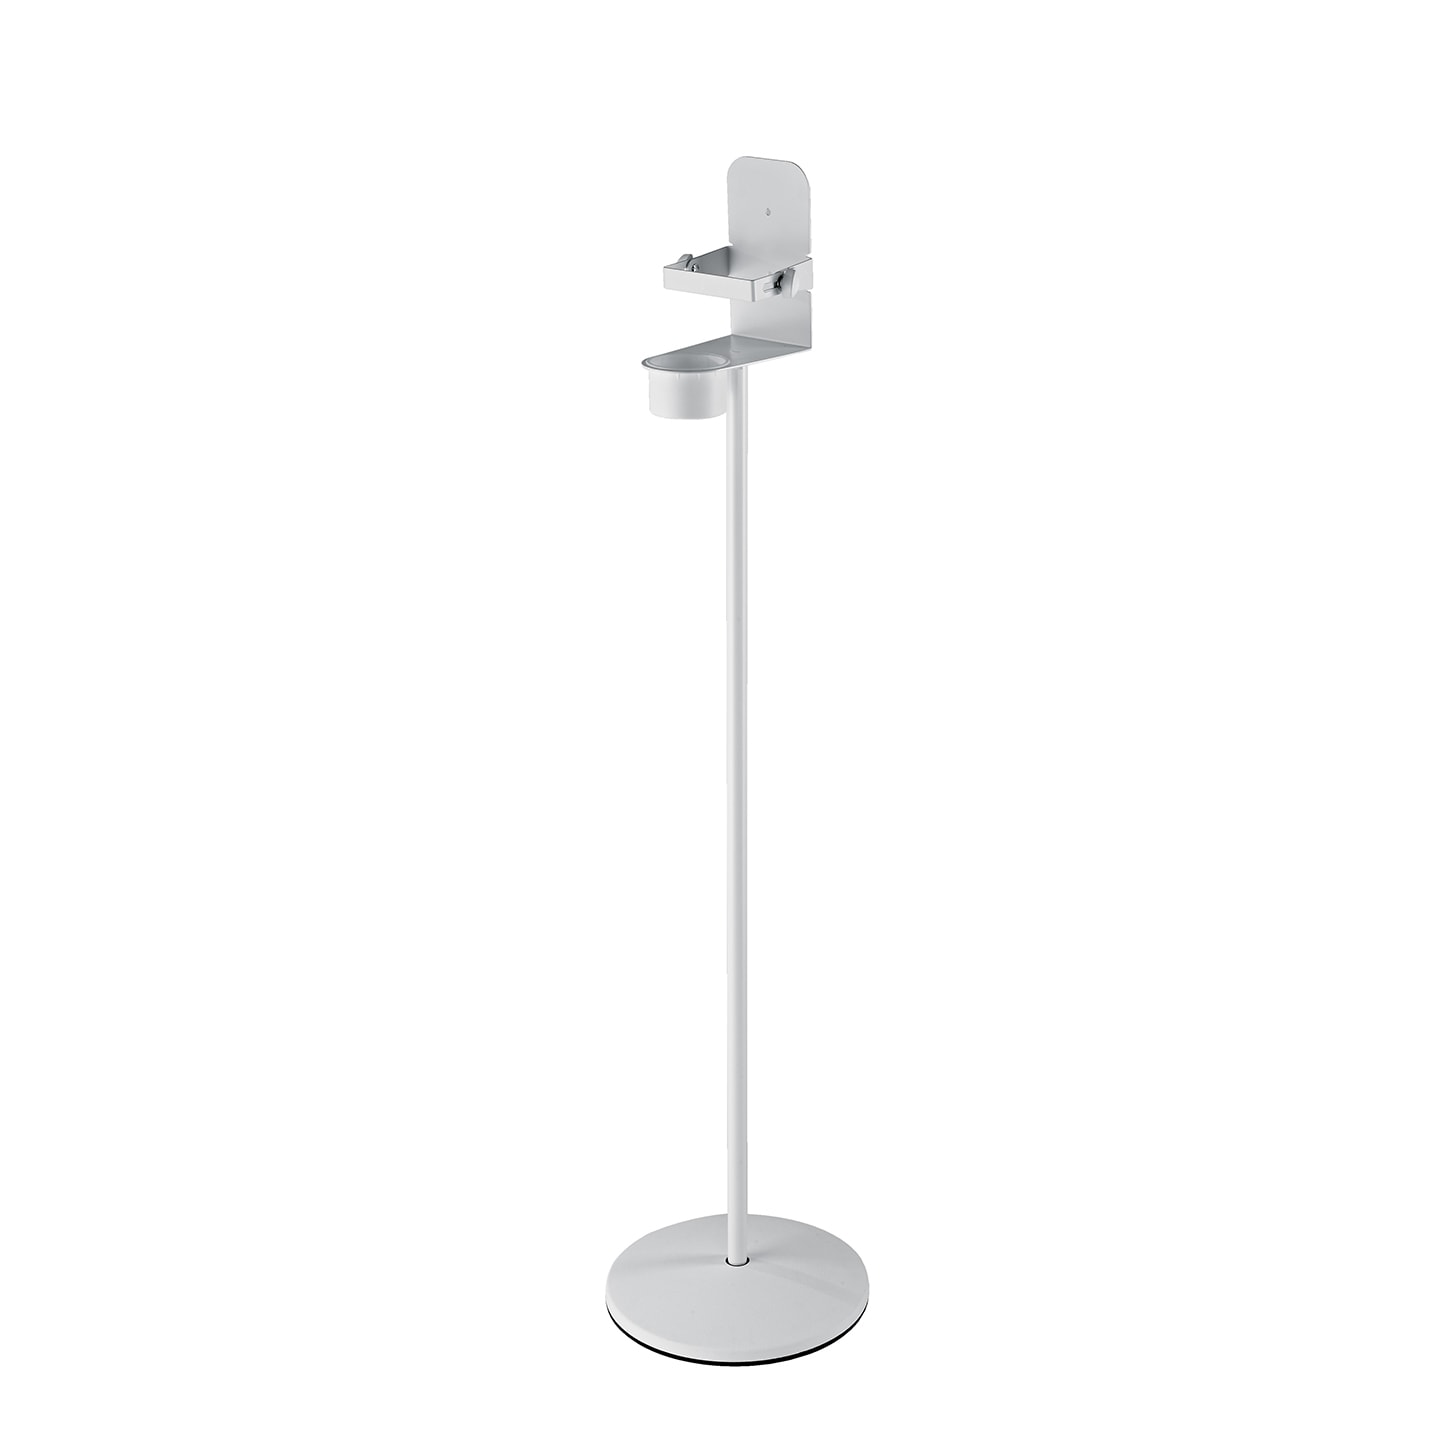 KM80315 - Disinfectant stand with bracket XL